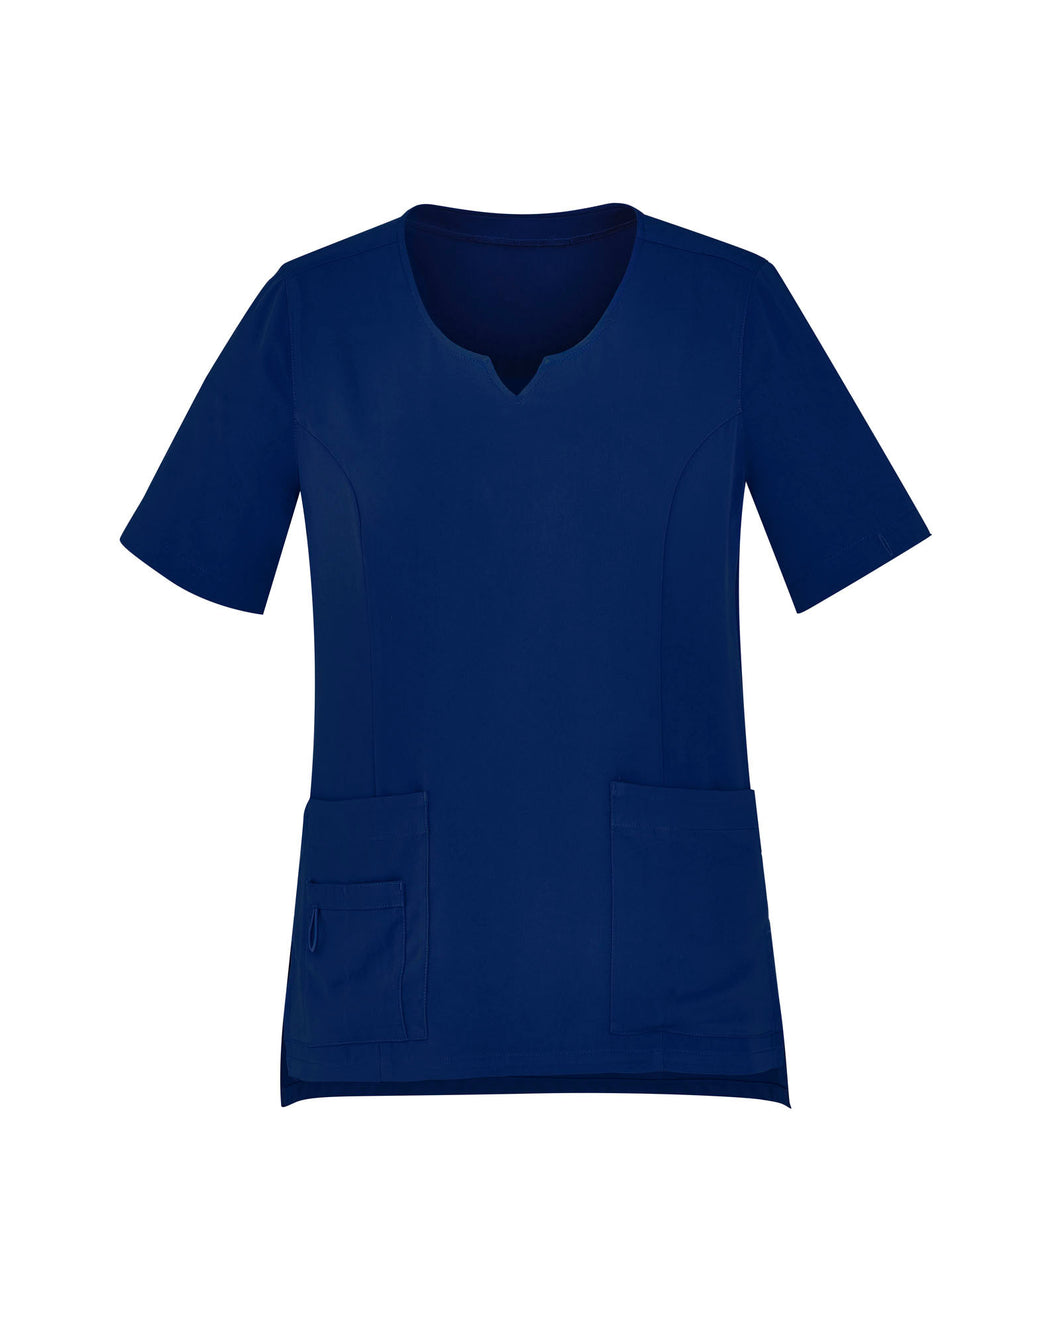 Women's Navy Tailored Fit Round Neck Scrubs Top